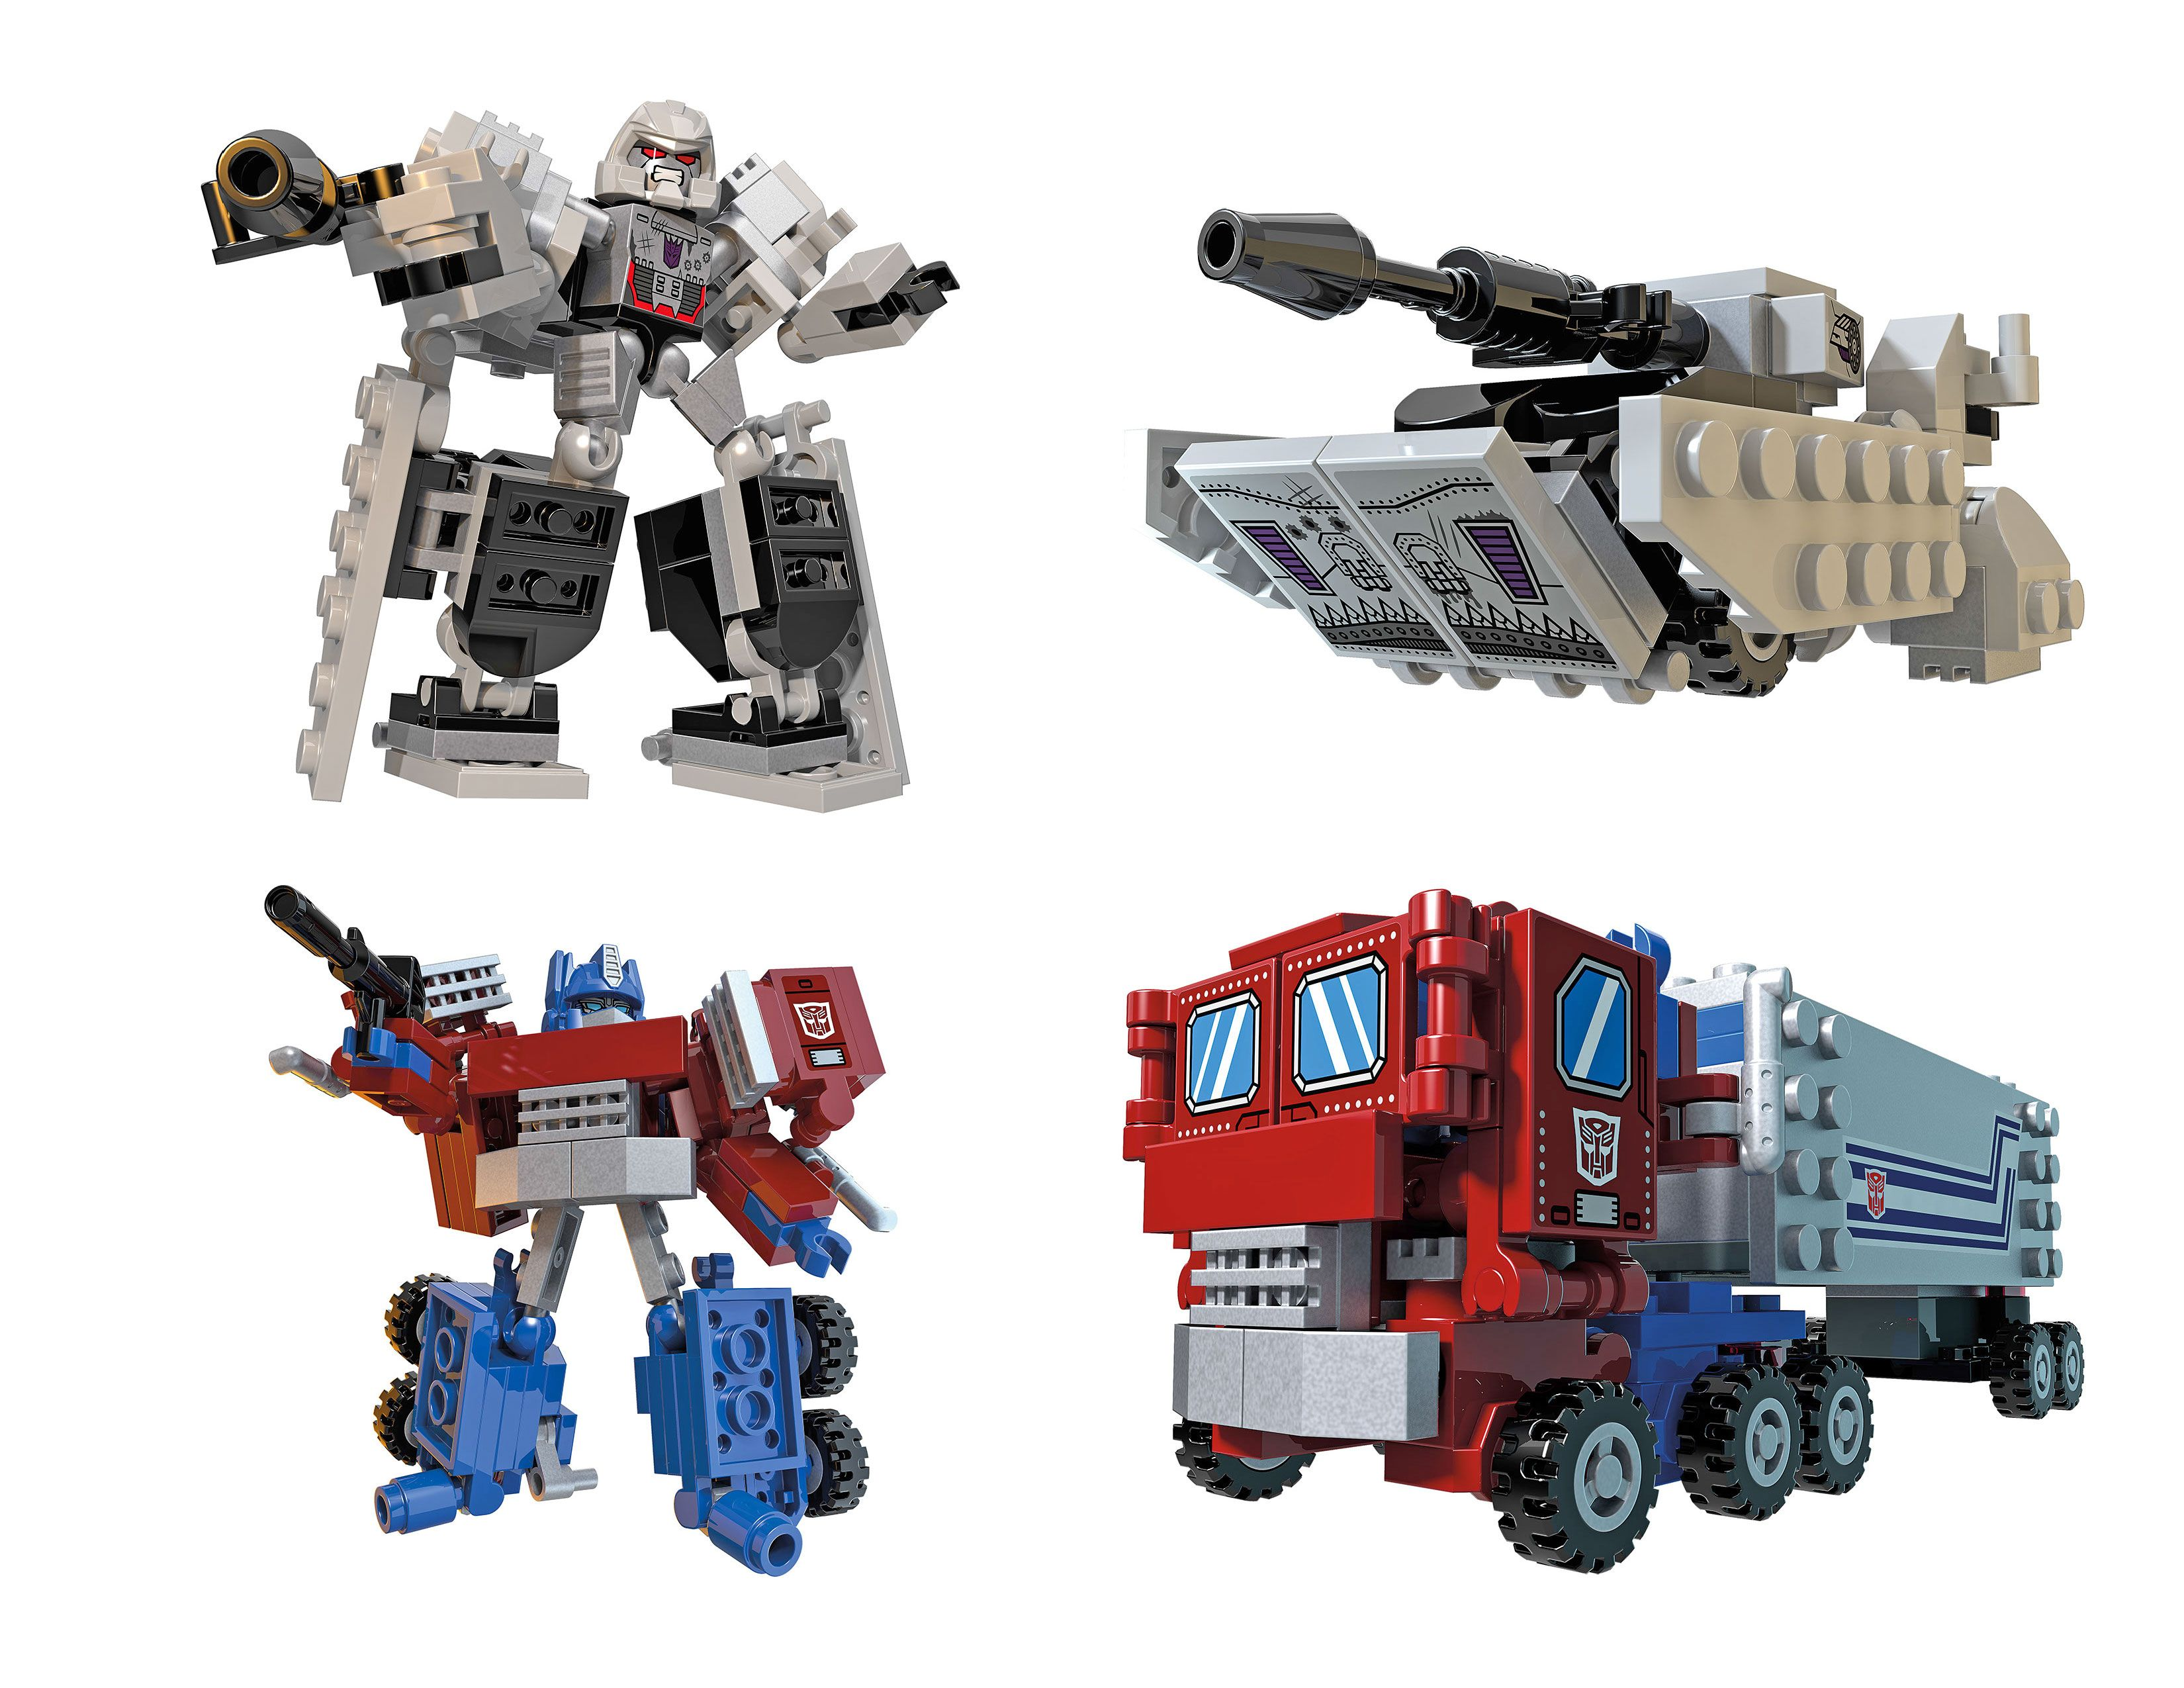 Transformers Nycc Kre O Official Images Transformers News Tfw2005 Spielzeug Sticken